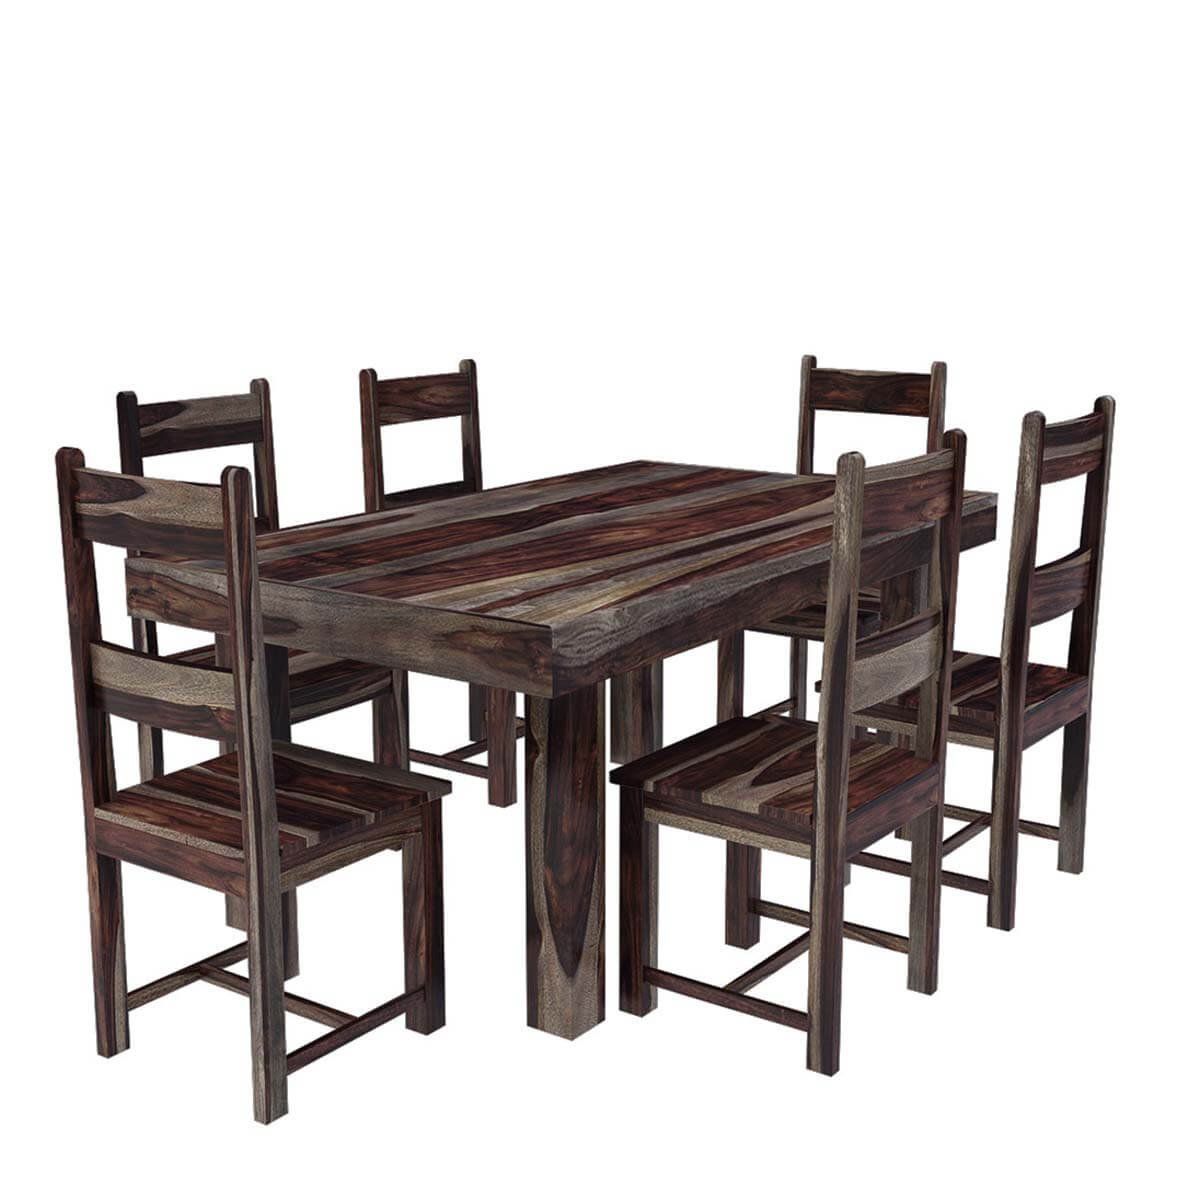 Frisco modern solid wood casual rustic dining room table for Rustic dining room